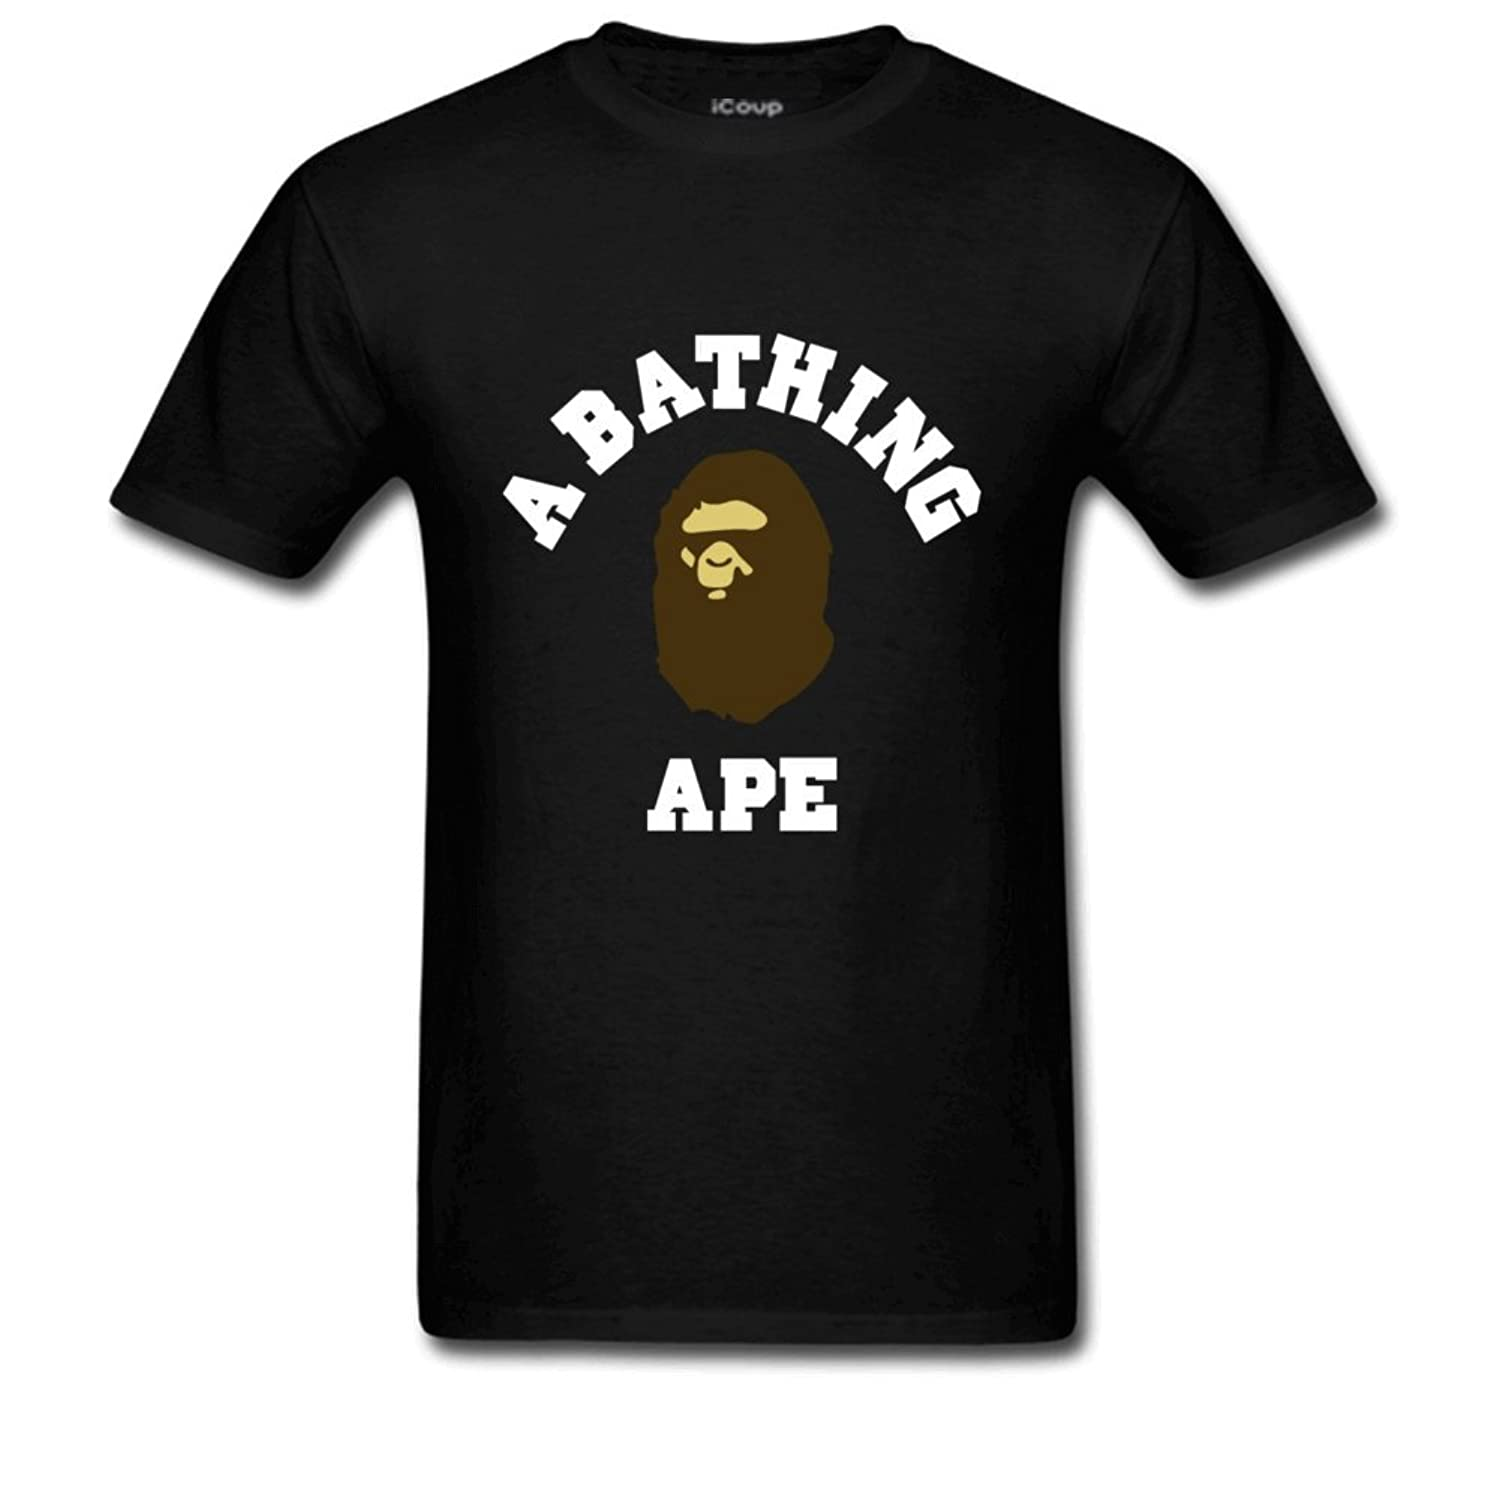 Spend Freely Men's Bape Brown And White Cotton Short Sleeve Crew Neck T Shirt Black by Amazon